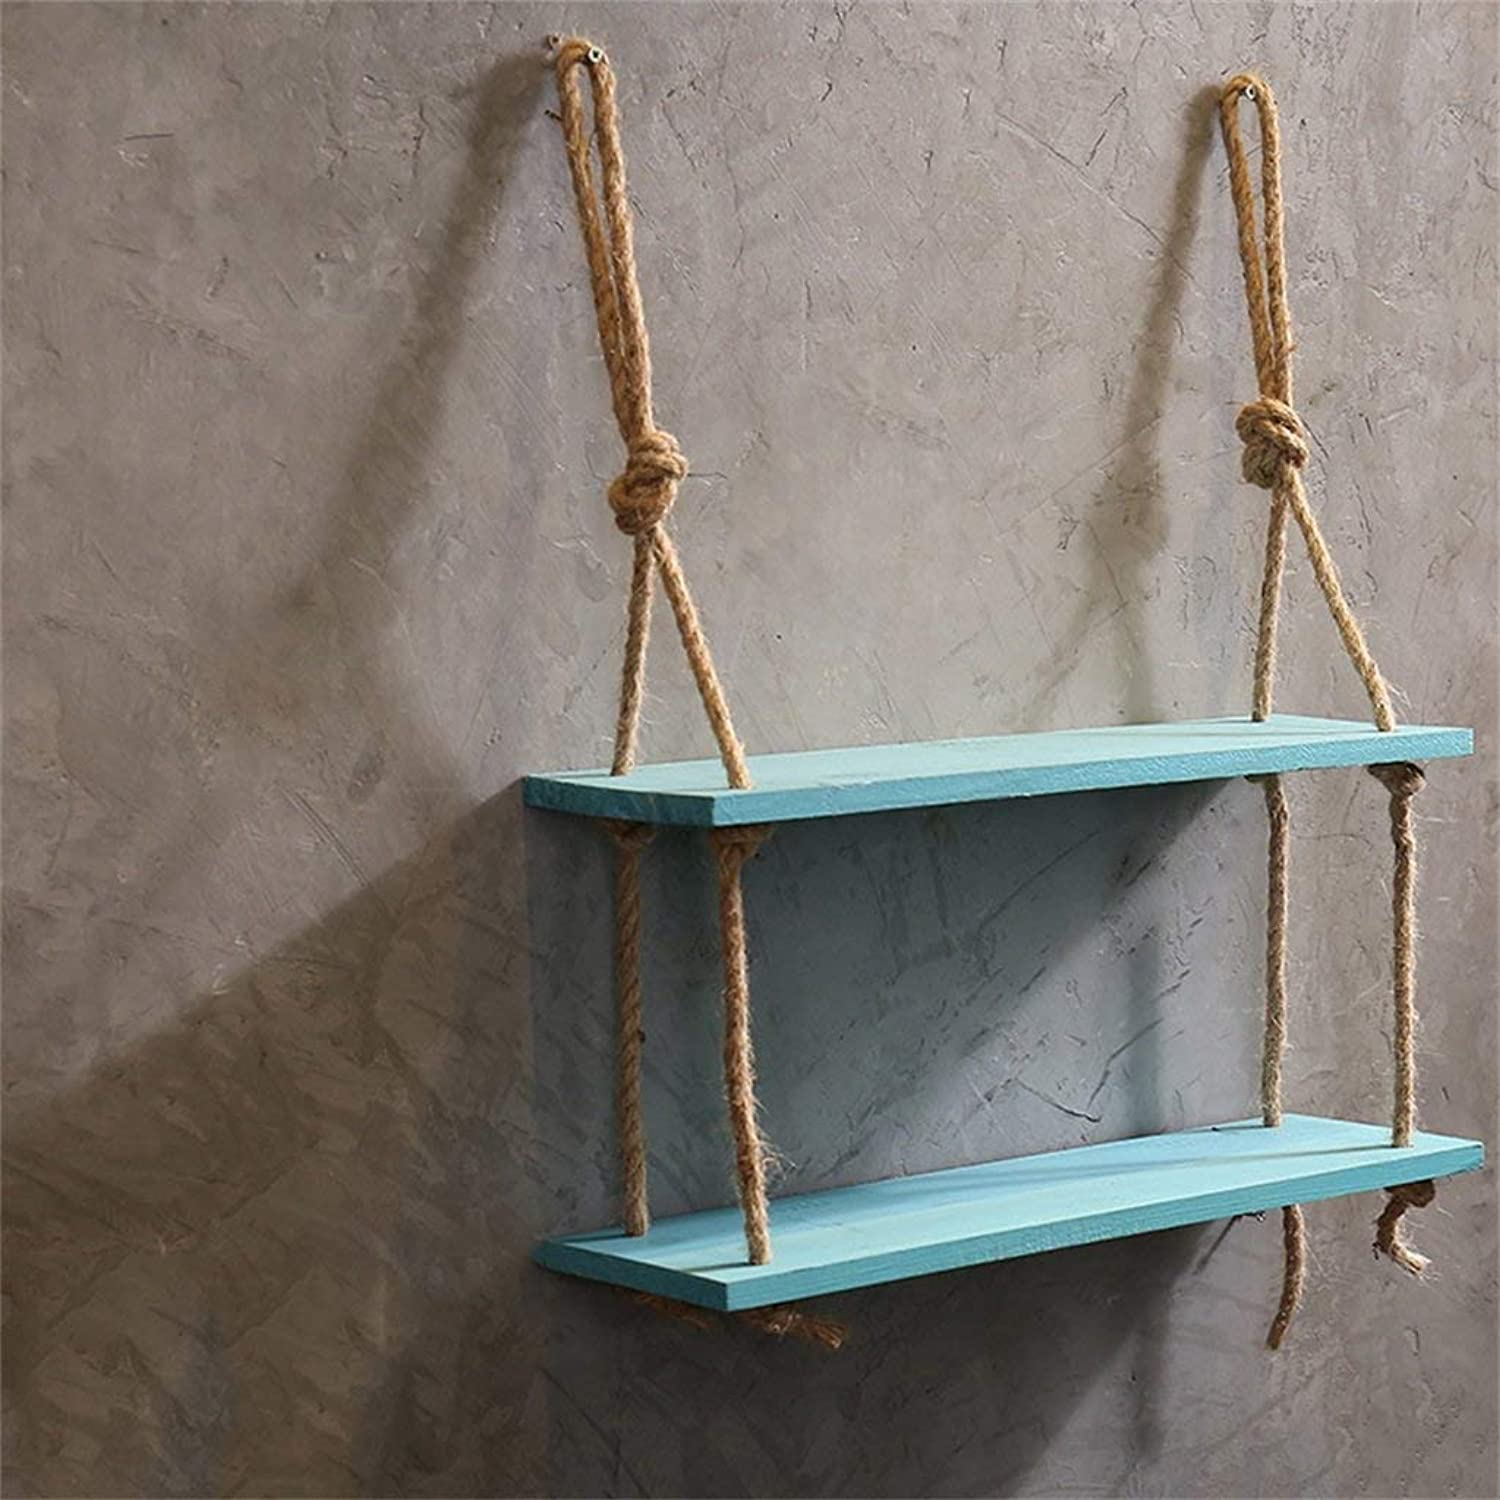 Hemp Rope Shelves Wood Wall Shelf Wall Hanging For Living Room As Bookshelf Storage Rack Wall Decorations Design bluee (Size   3 Tiers) (color   -, Size   2 Tiers)